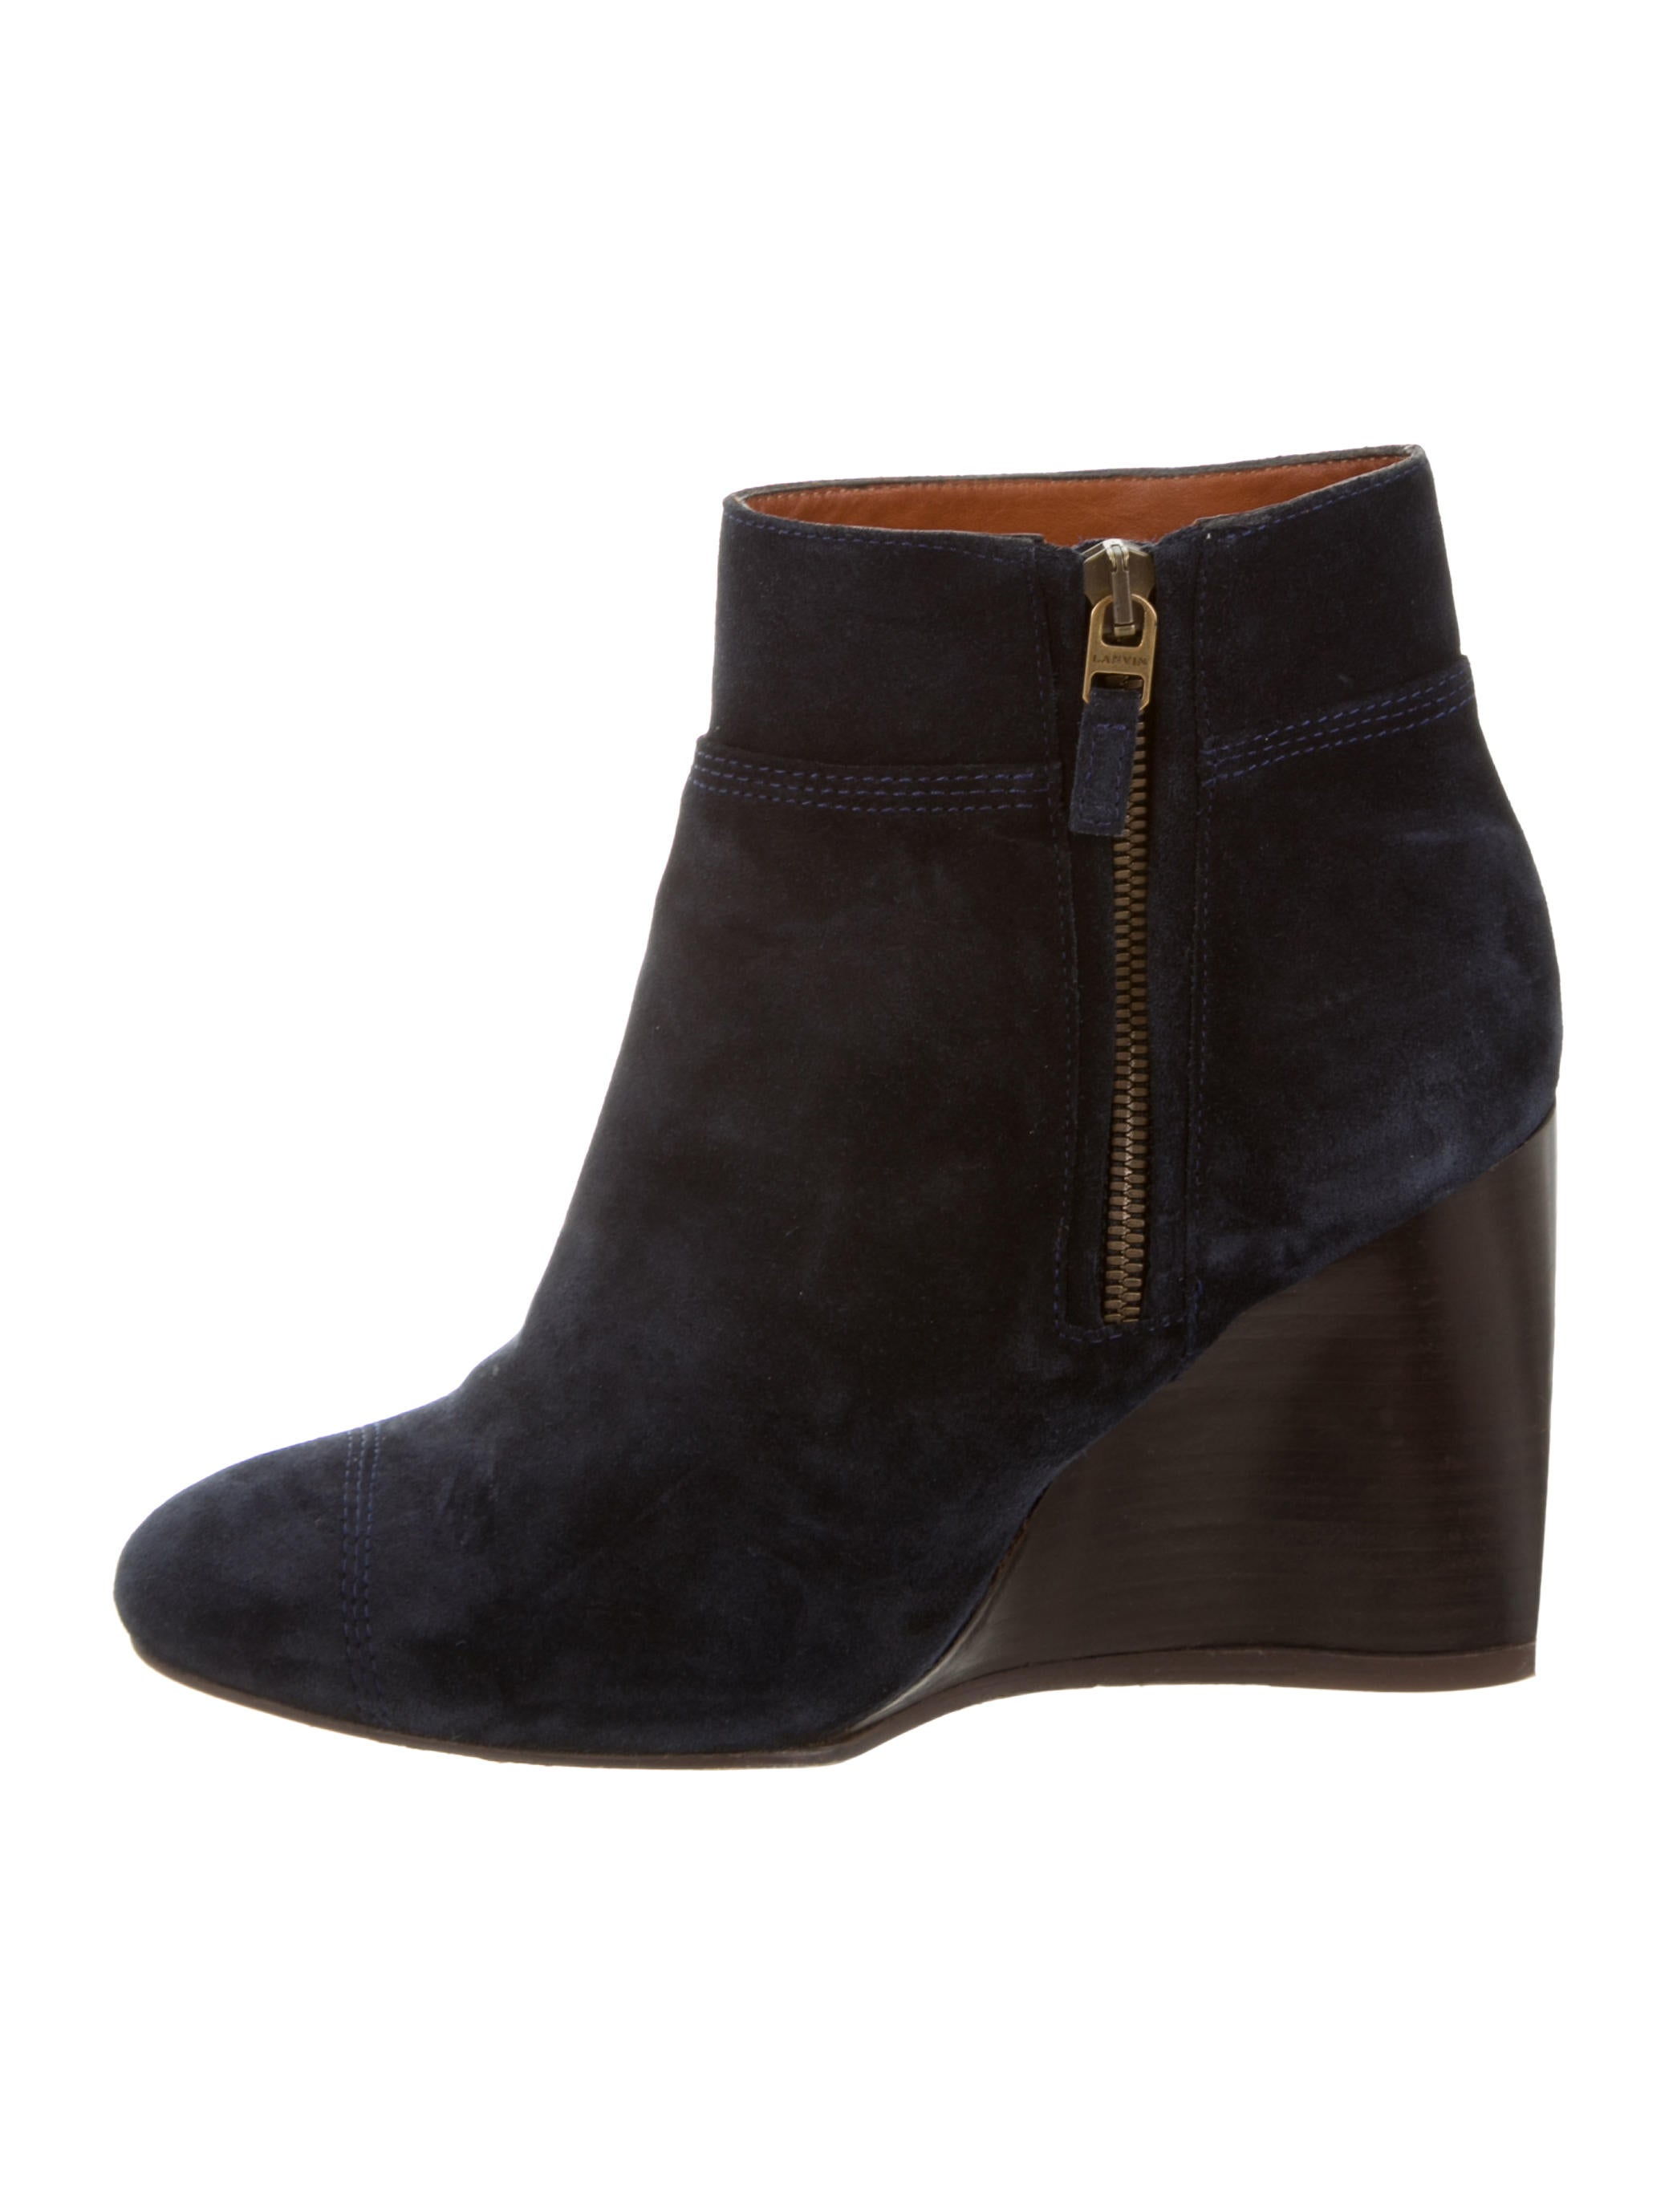 lanvin suede wedge ankle boots shoes lan49399 the